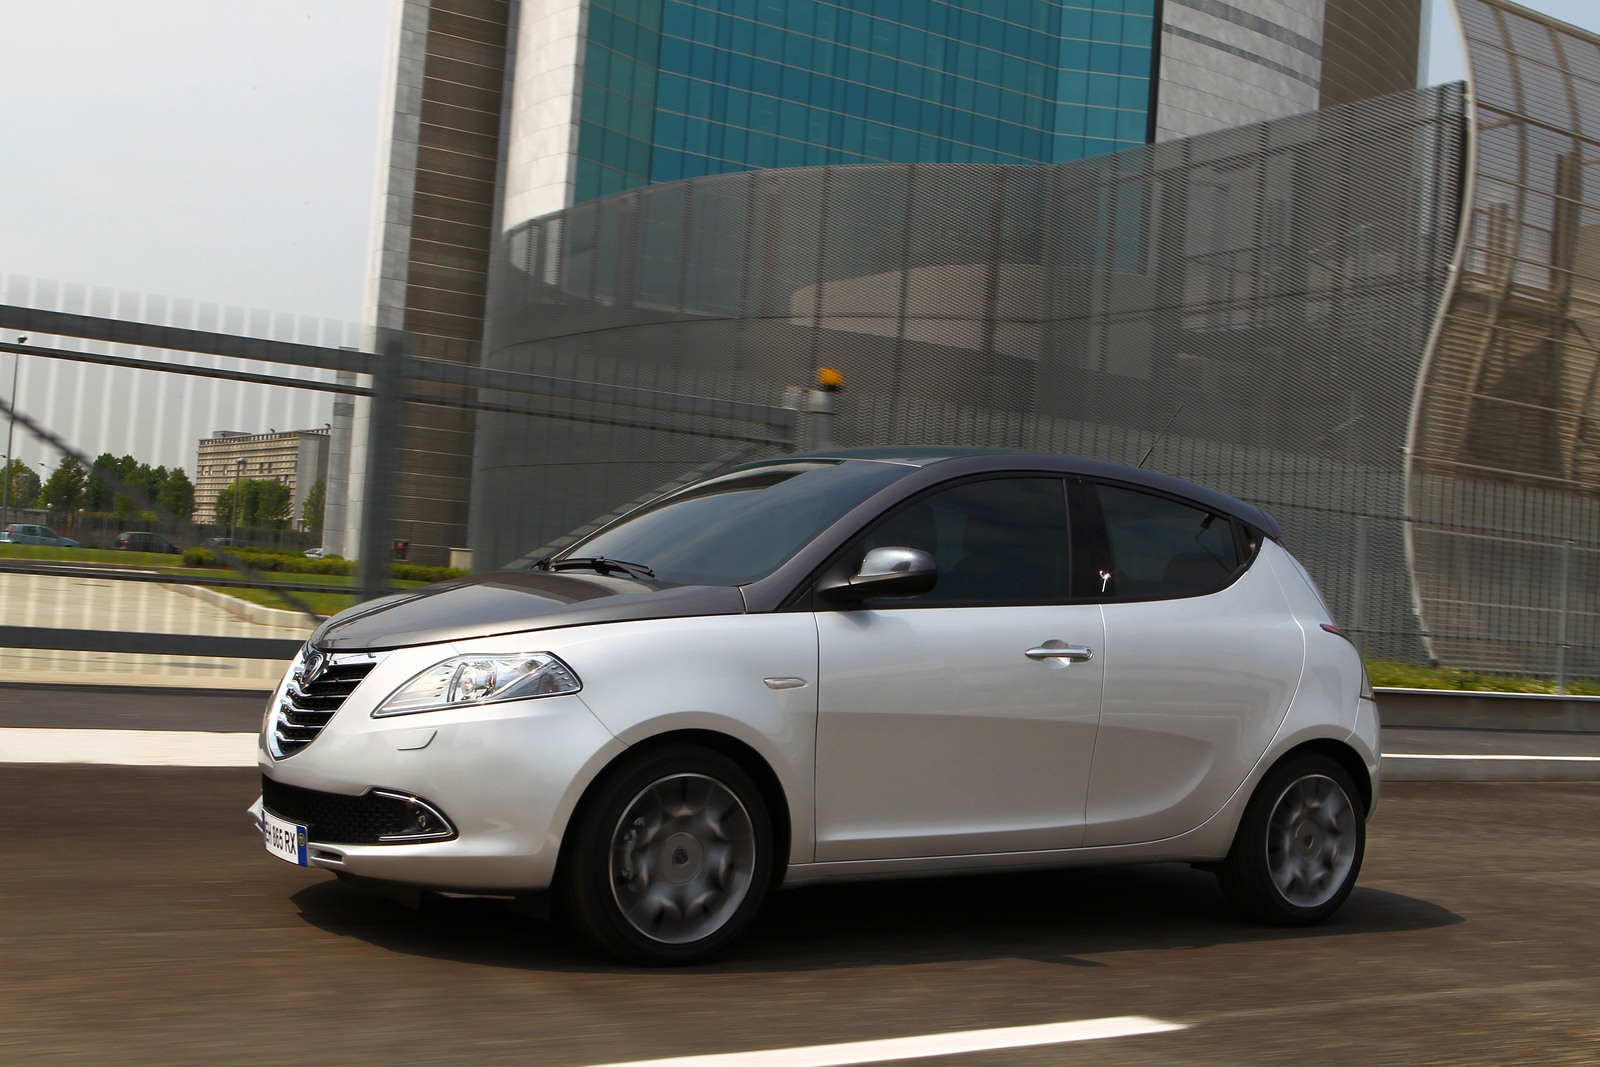 Photo gallery lancia ypsilon 2011 w videos lancia y diva 2011 - Lancia y diva 2010 ...